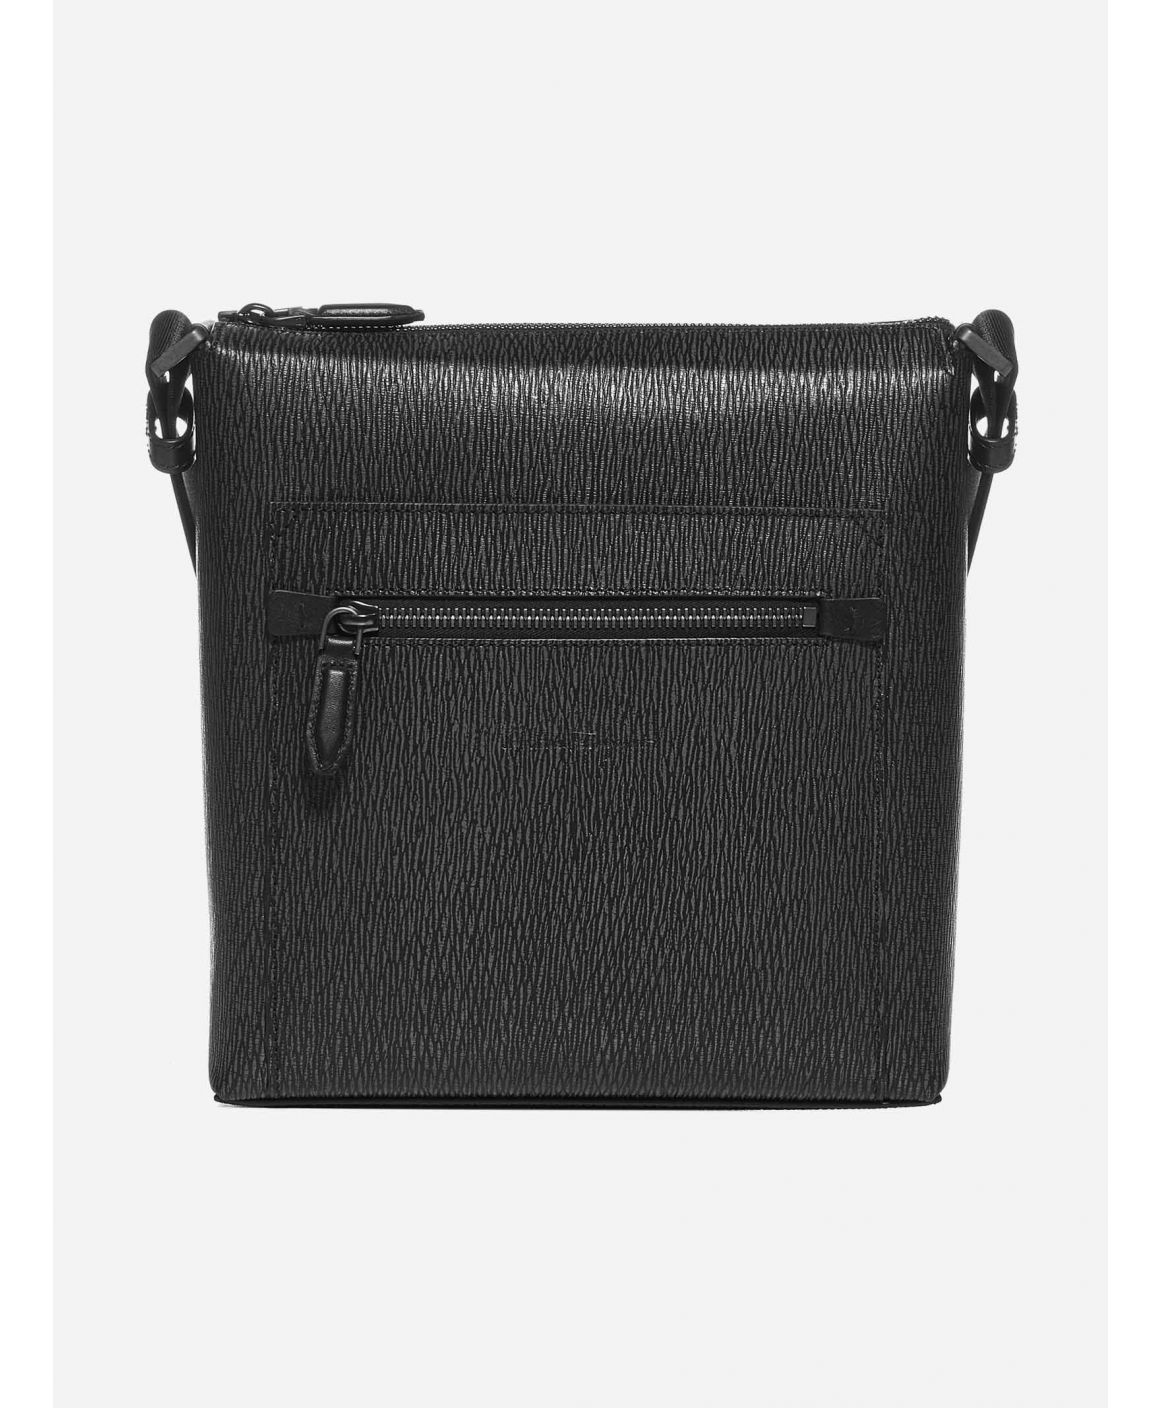 Revival 3.0 leather shoulder bag